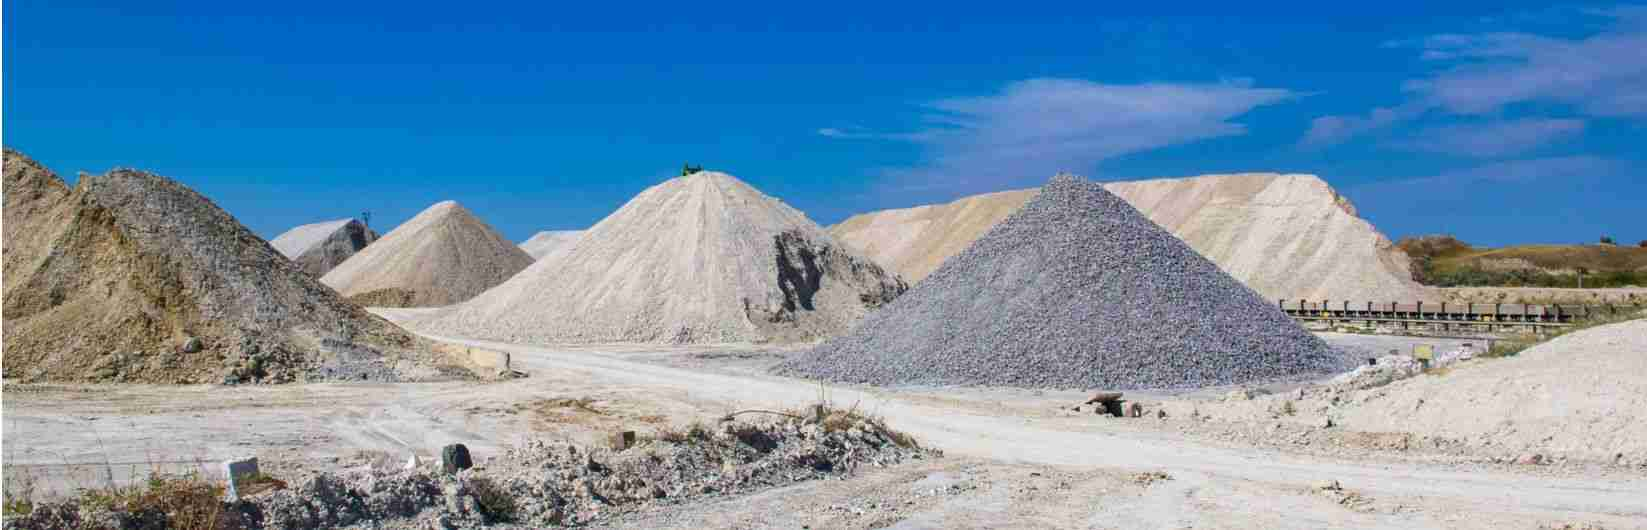 Savills Minerals and Commodities